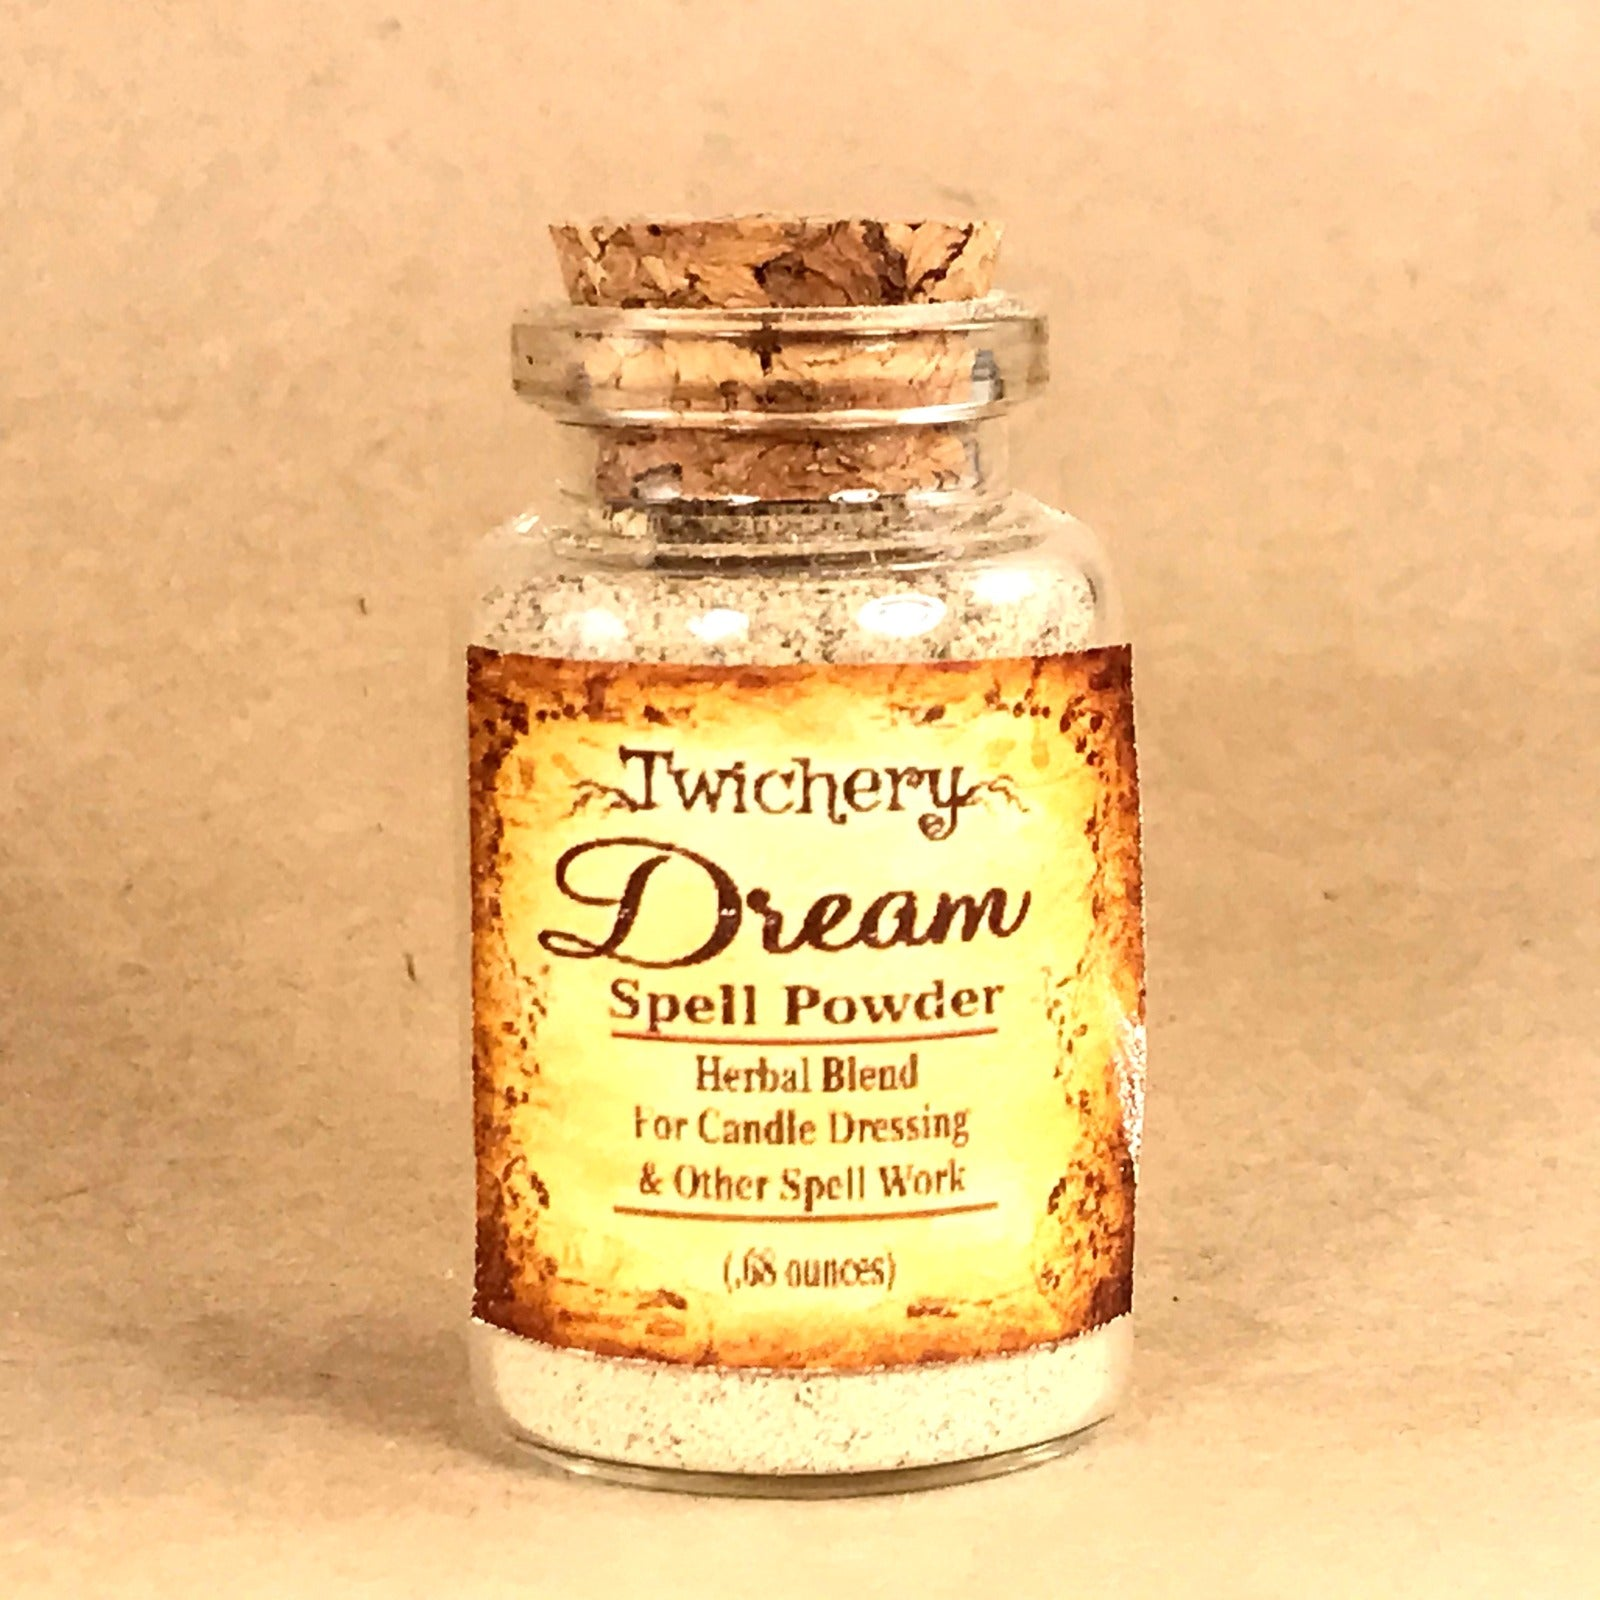 Twichery Dream Spell Powder is for lucid dreaming and receiving revelations through subconscious means. Hoodoo Voodoo Twichery Pagan Wicca